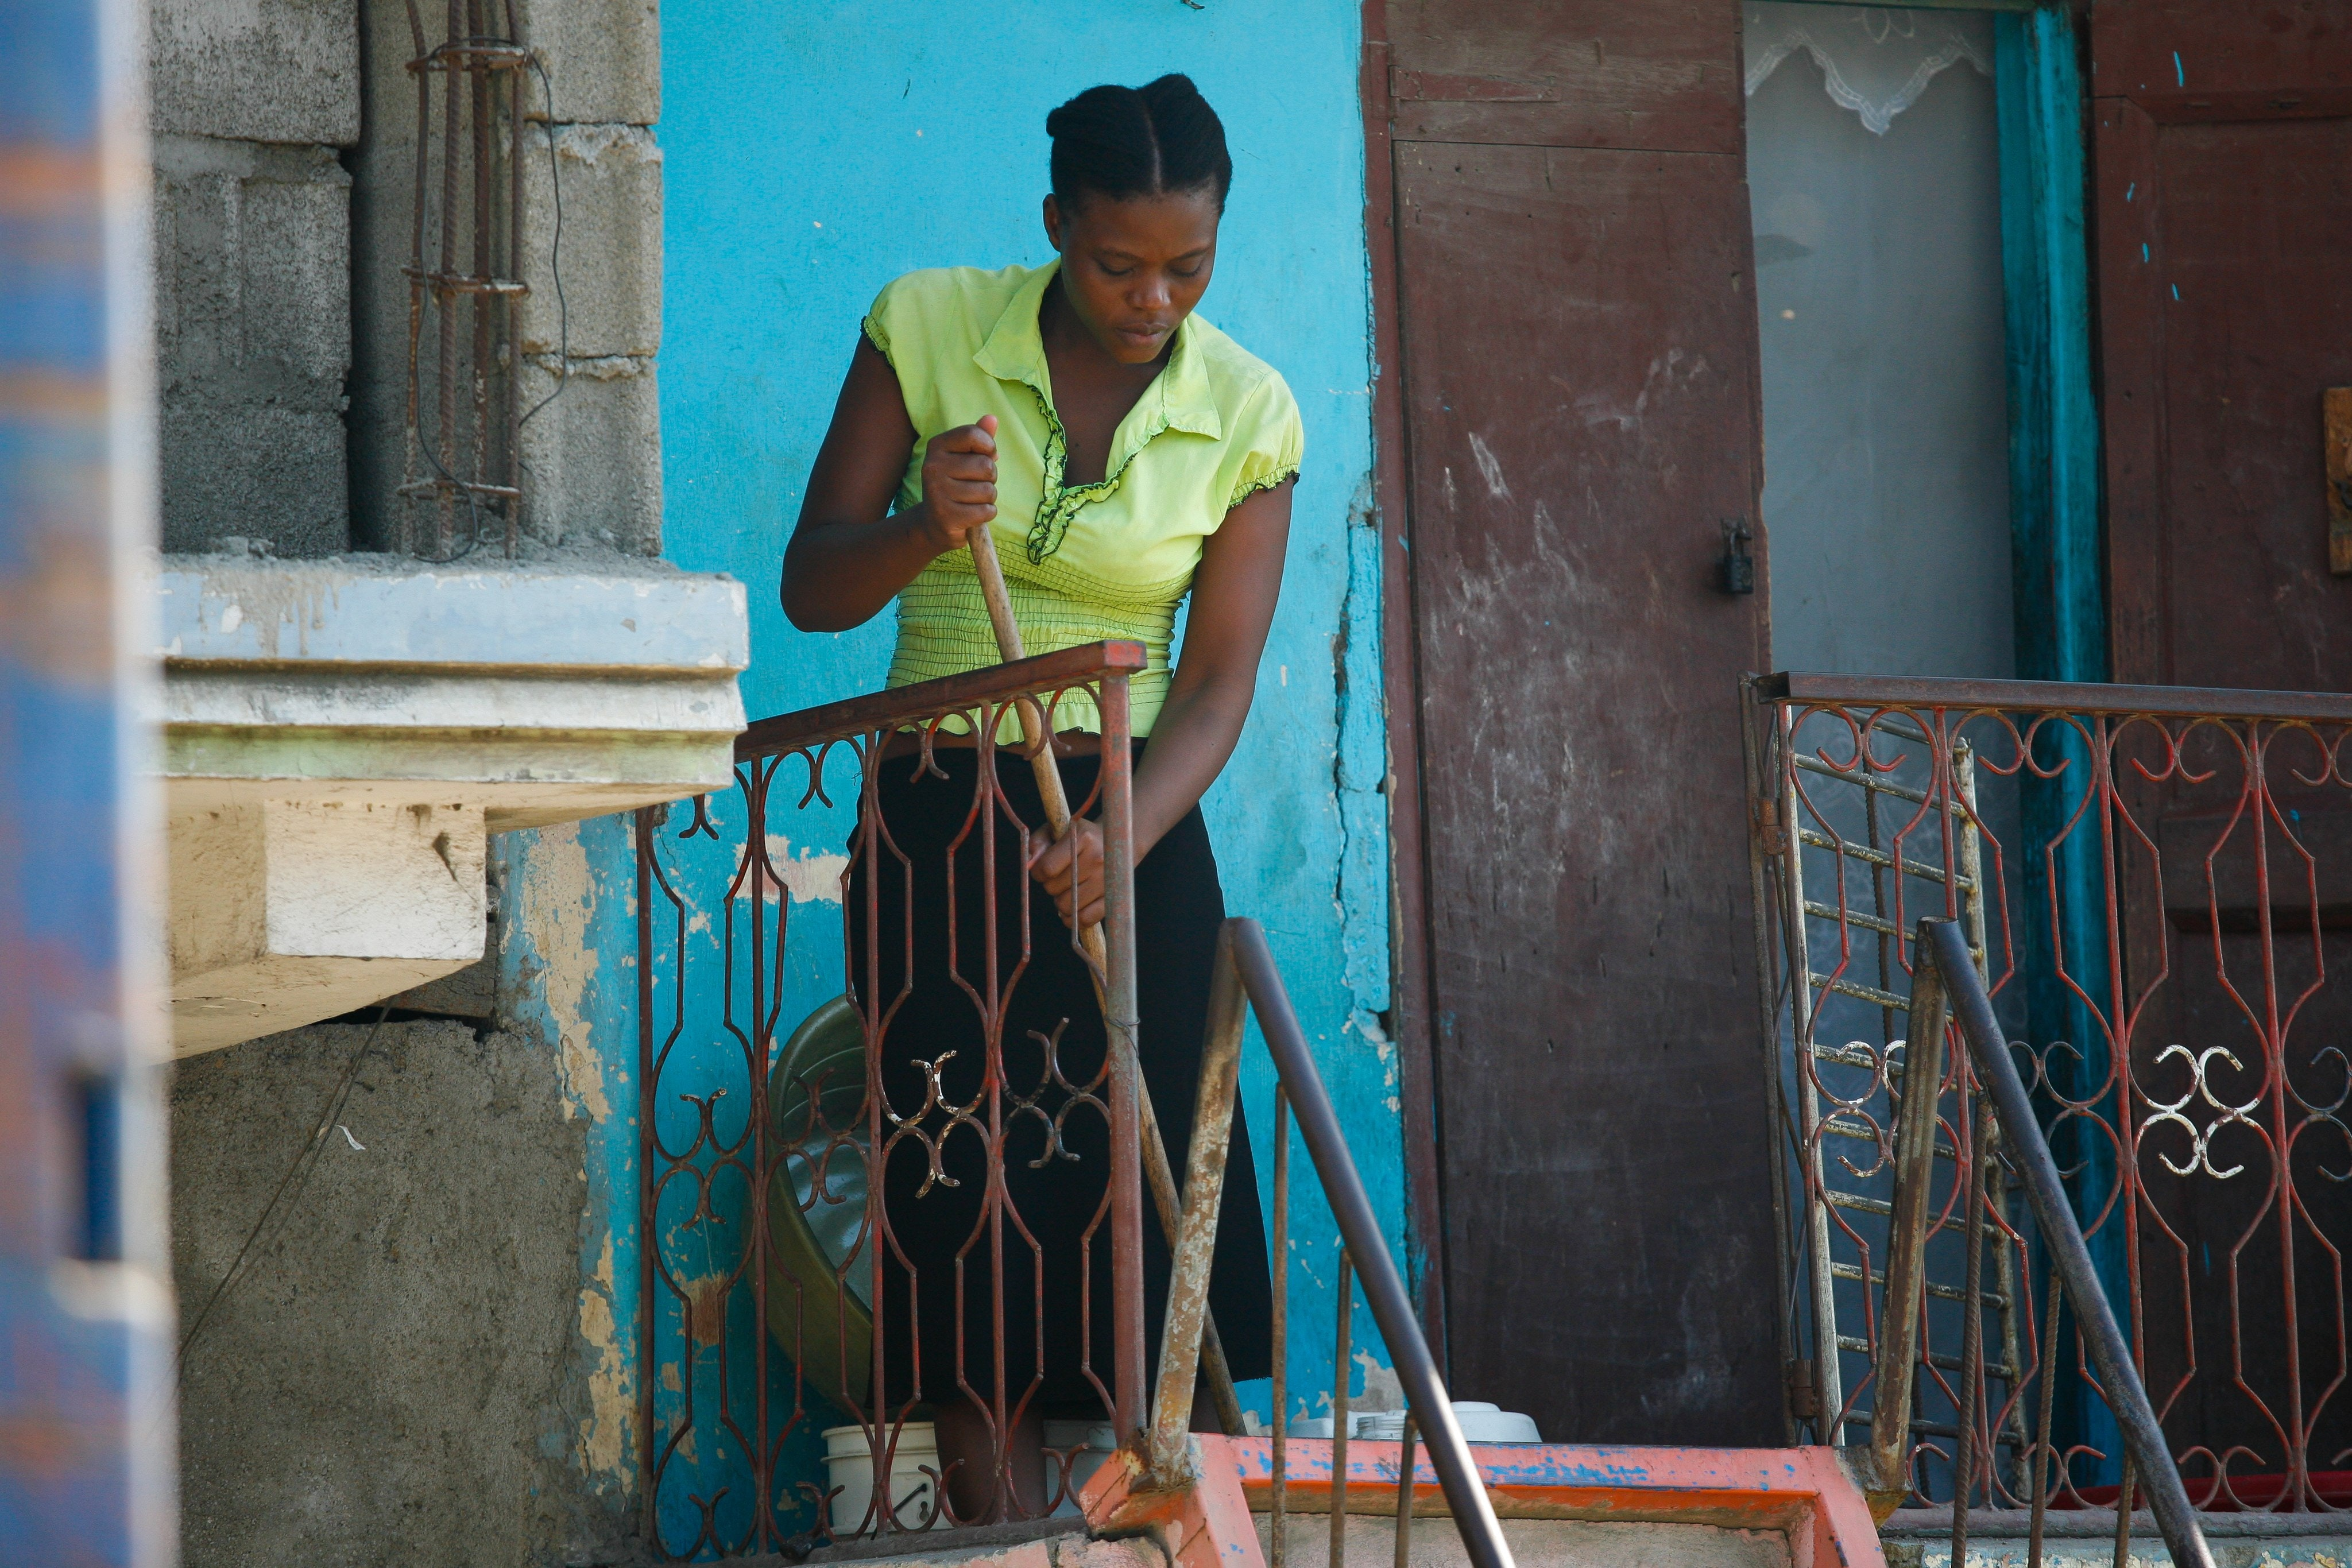 Haitian domestic worker, 2012. Women account for the majority of such workers yet they remain invisible. Photo credit: Alex Proimos/Flickr [Licensed under CC BY-SA]